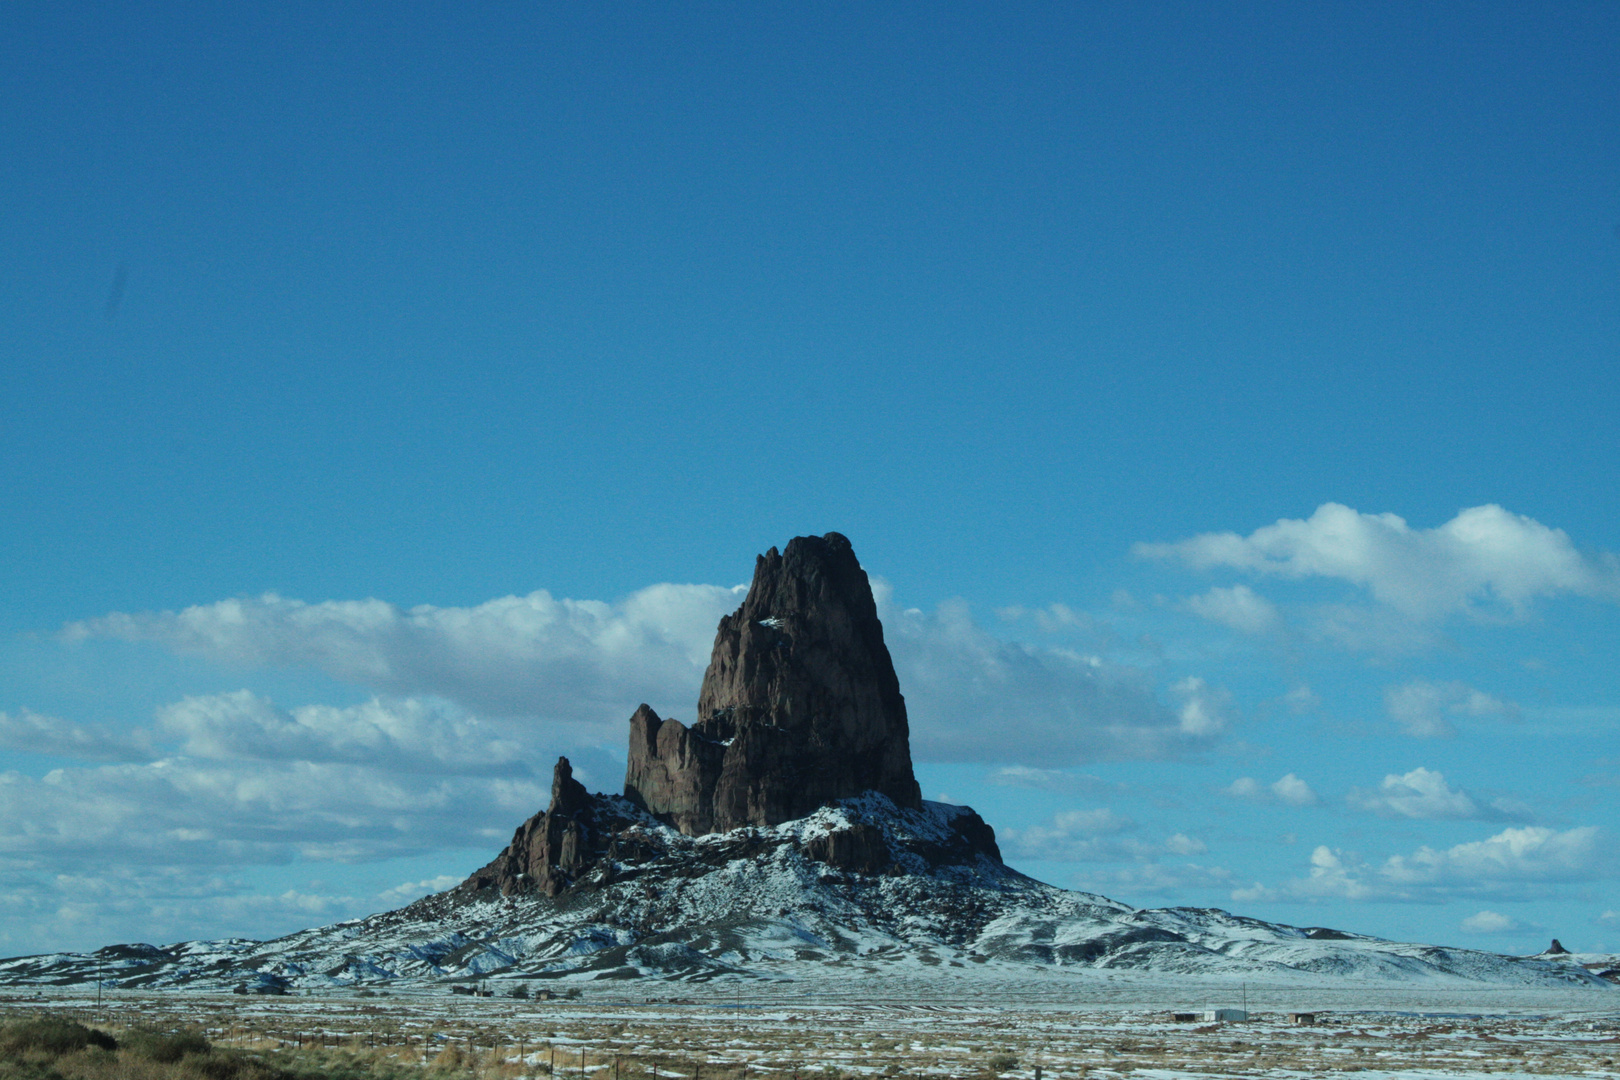 Somewhere on the road to Monument Valley